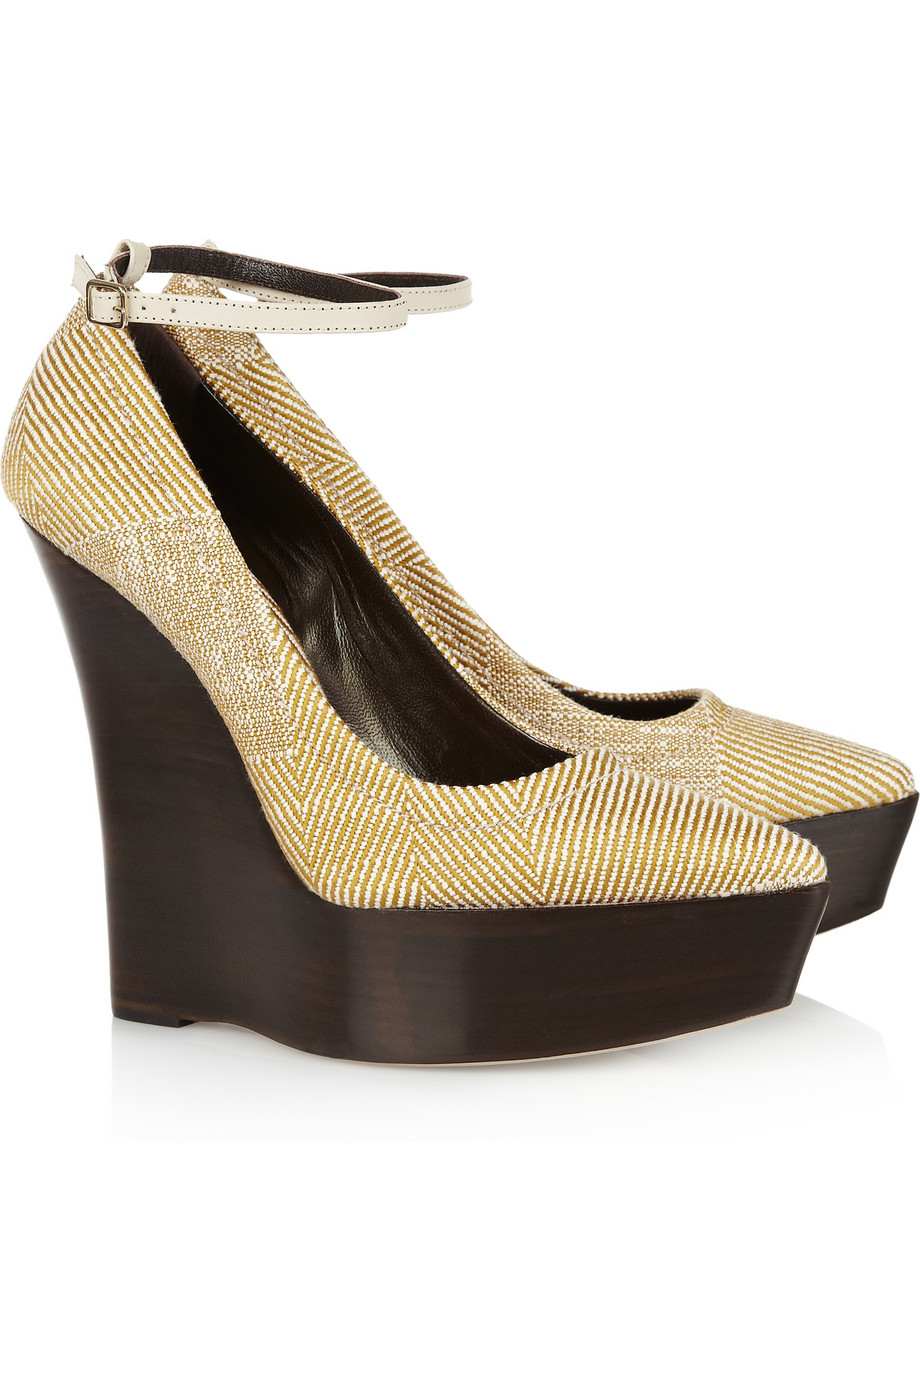 Burberry Shoes Womens Nordstrom